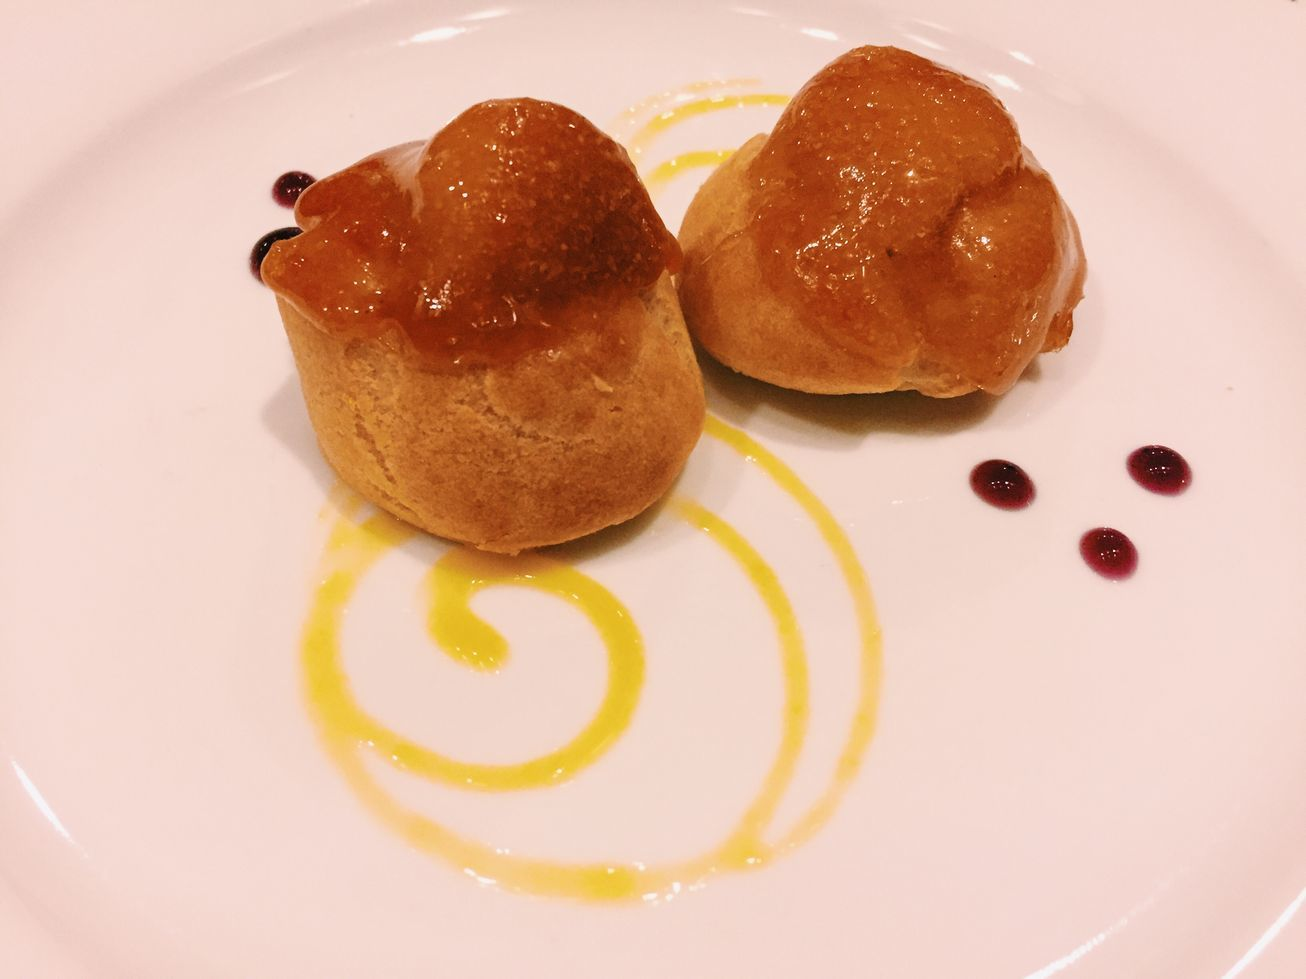 Caramelized profiteroles at Top of the Citi by Chef Jessie